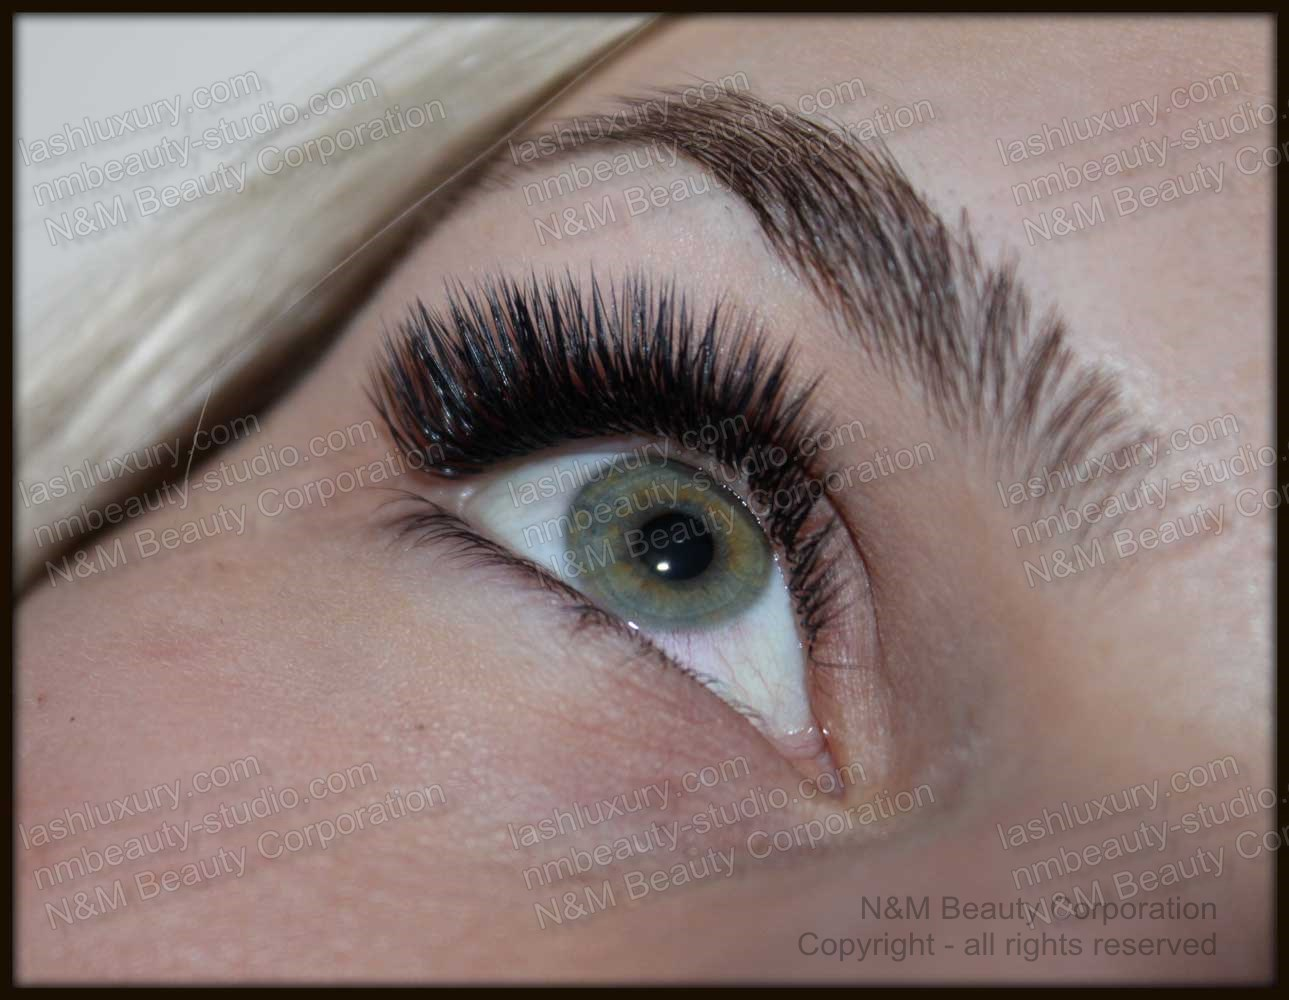 Hair Eyelash Extensions Human Hair Extensions